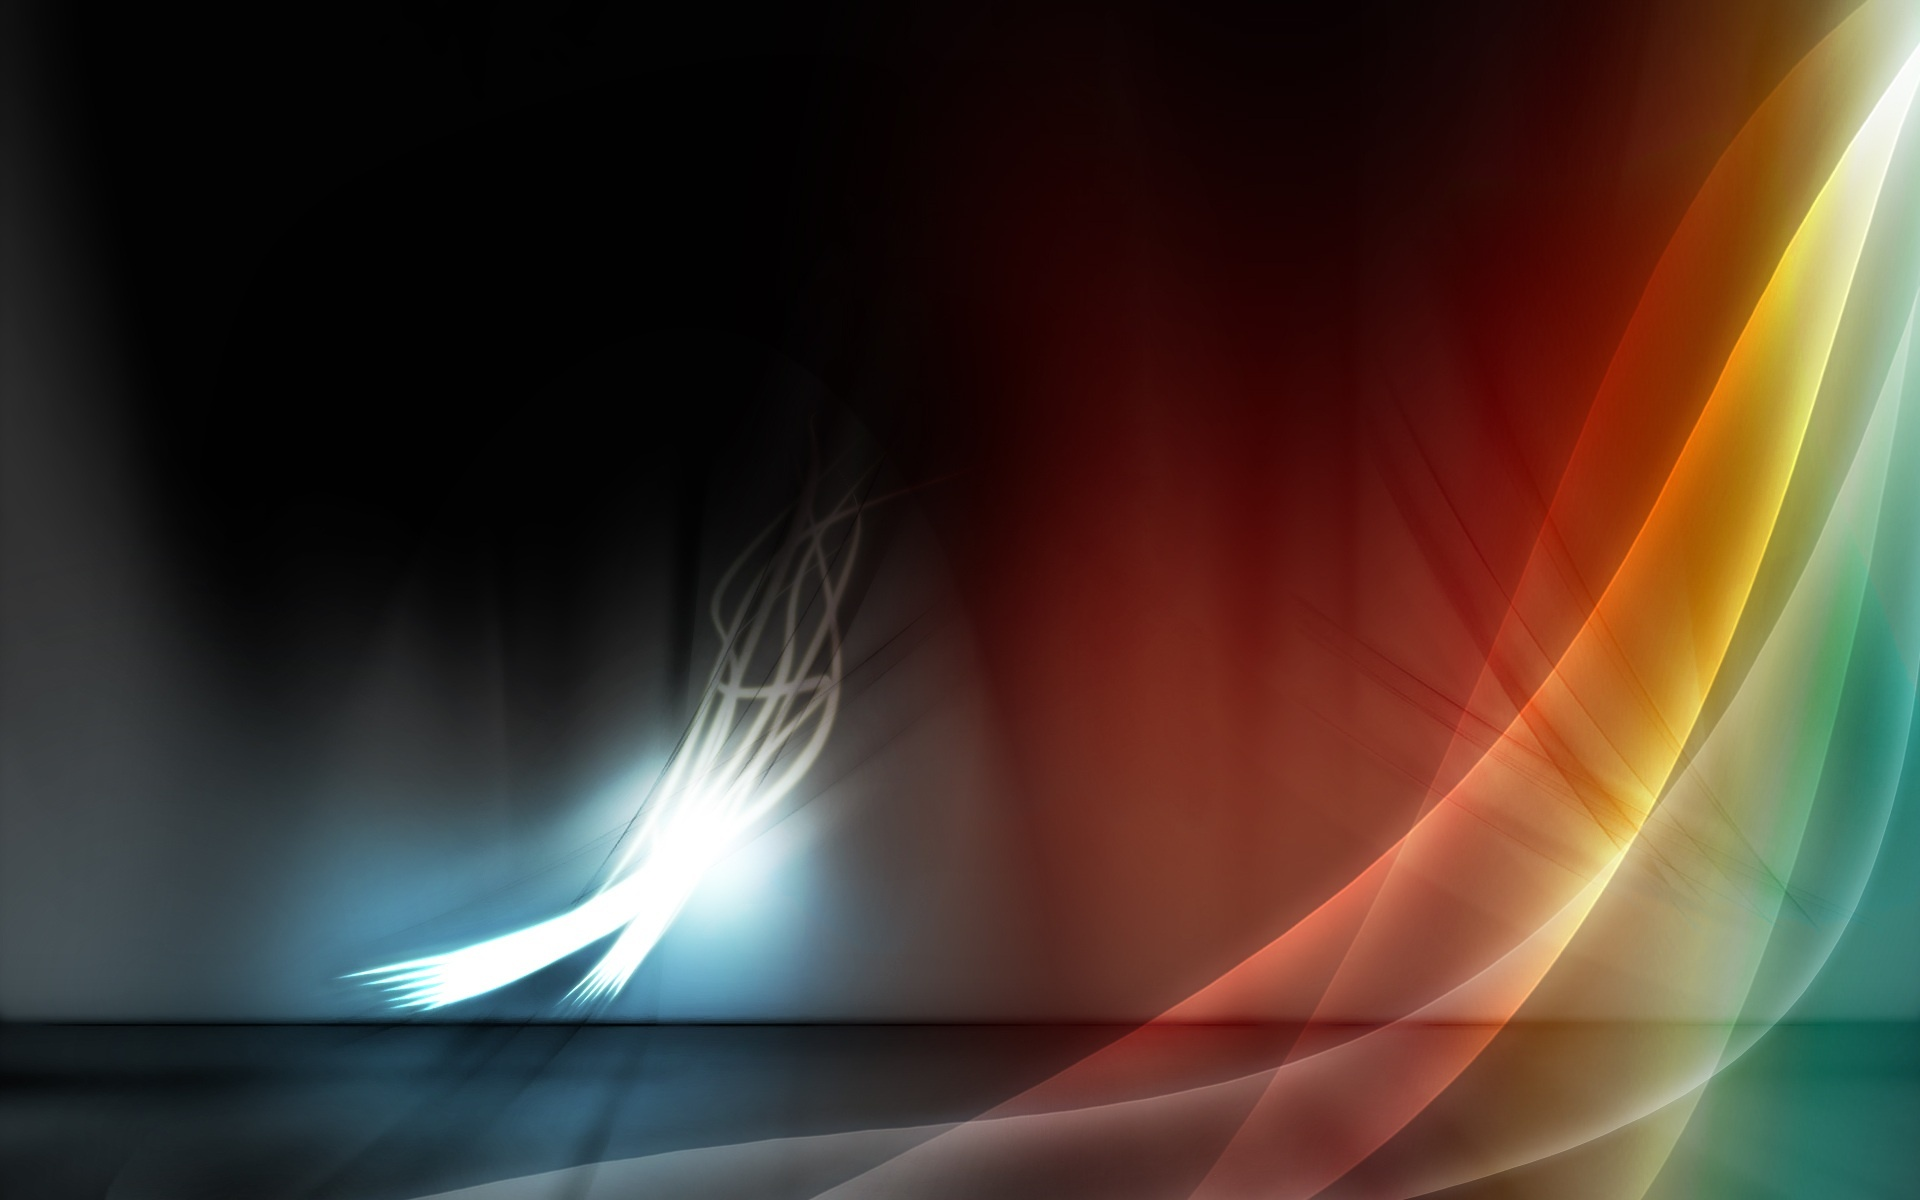 abstract wallpapers hd growing